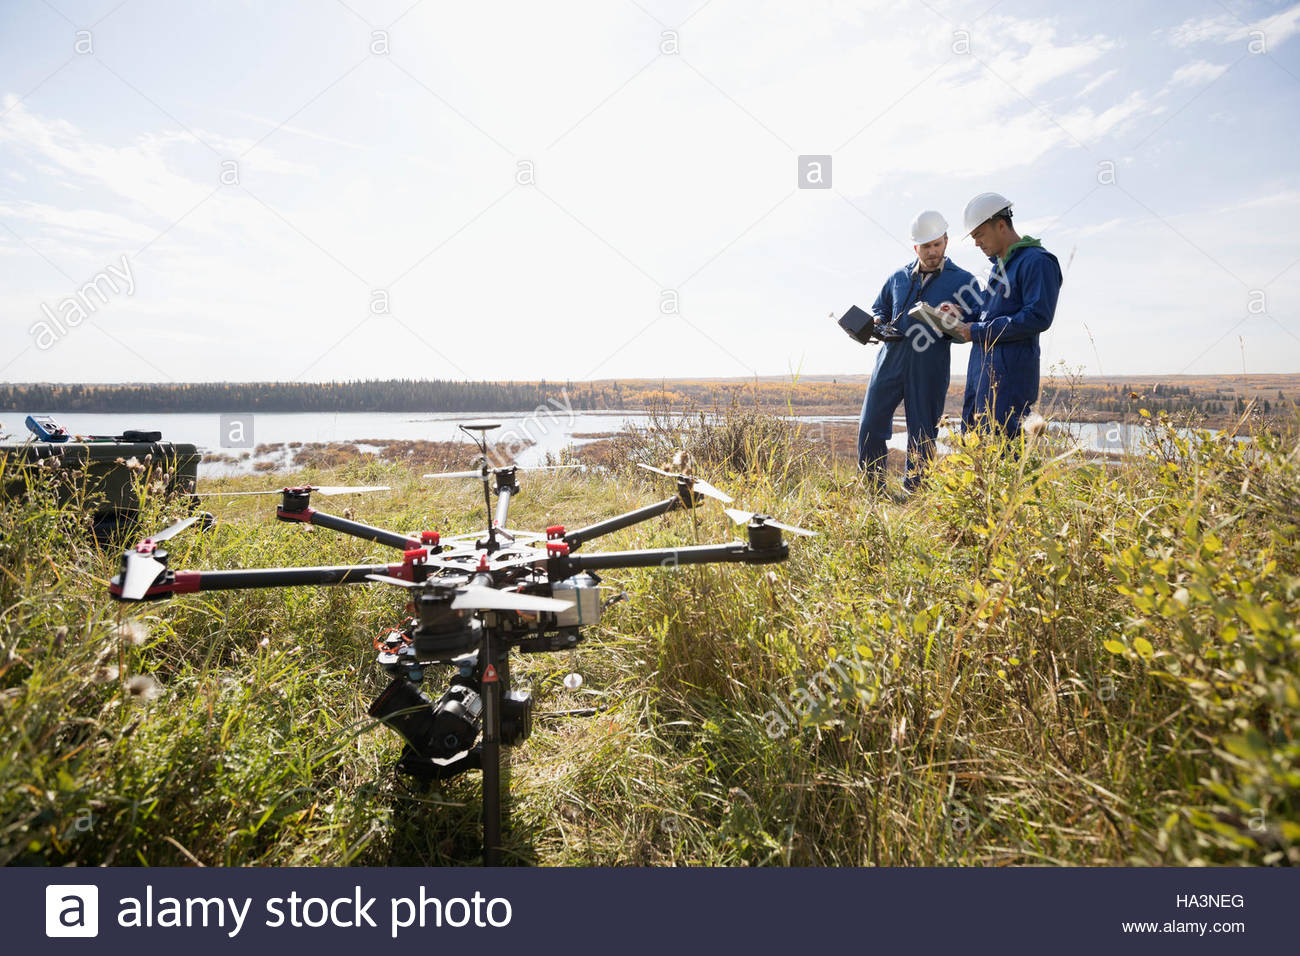 Surveyors with drone equipment on sunny hilltop overlooking lake - Stock Image